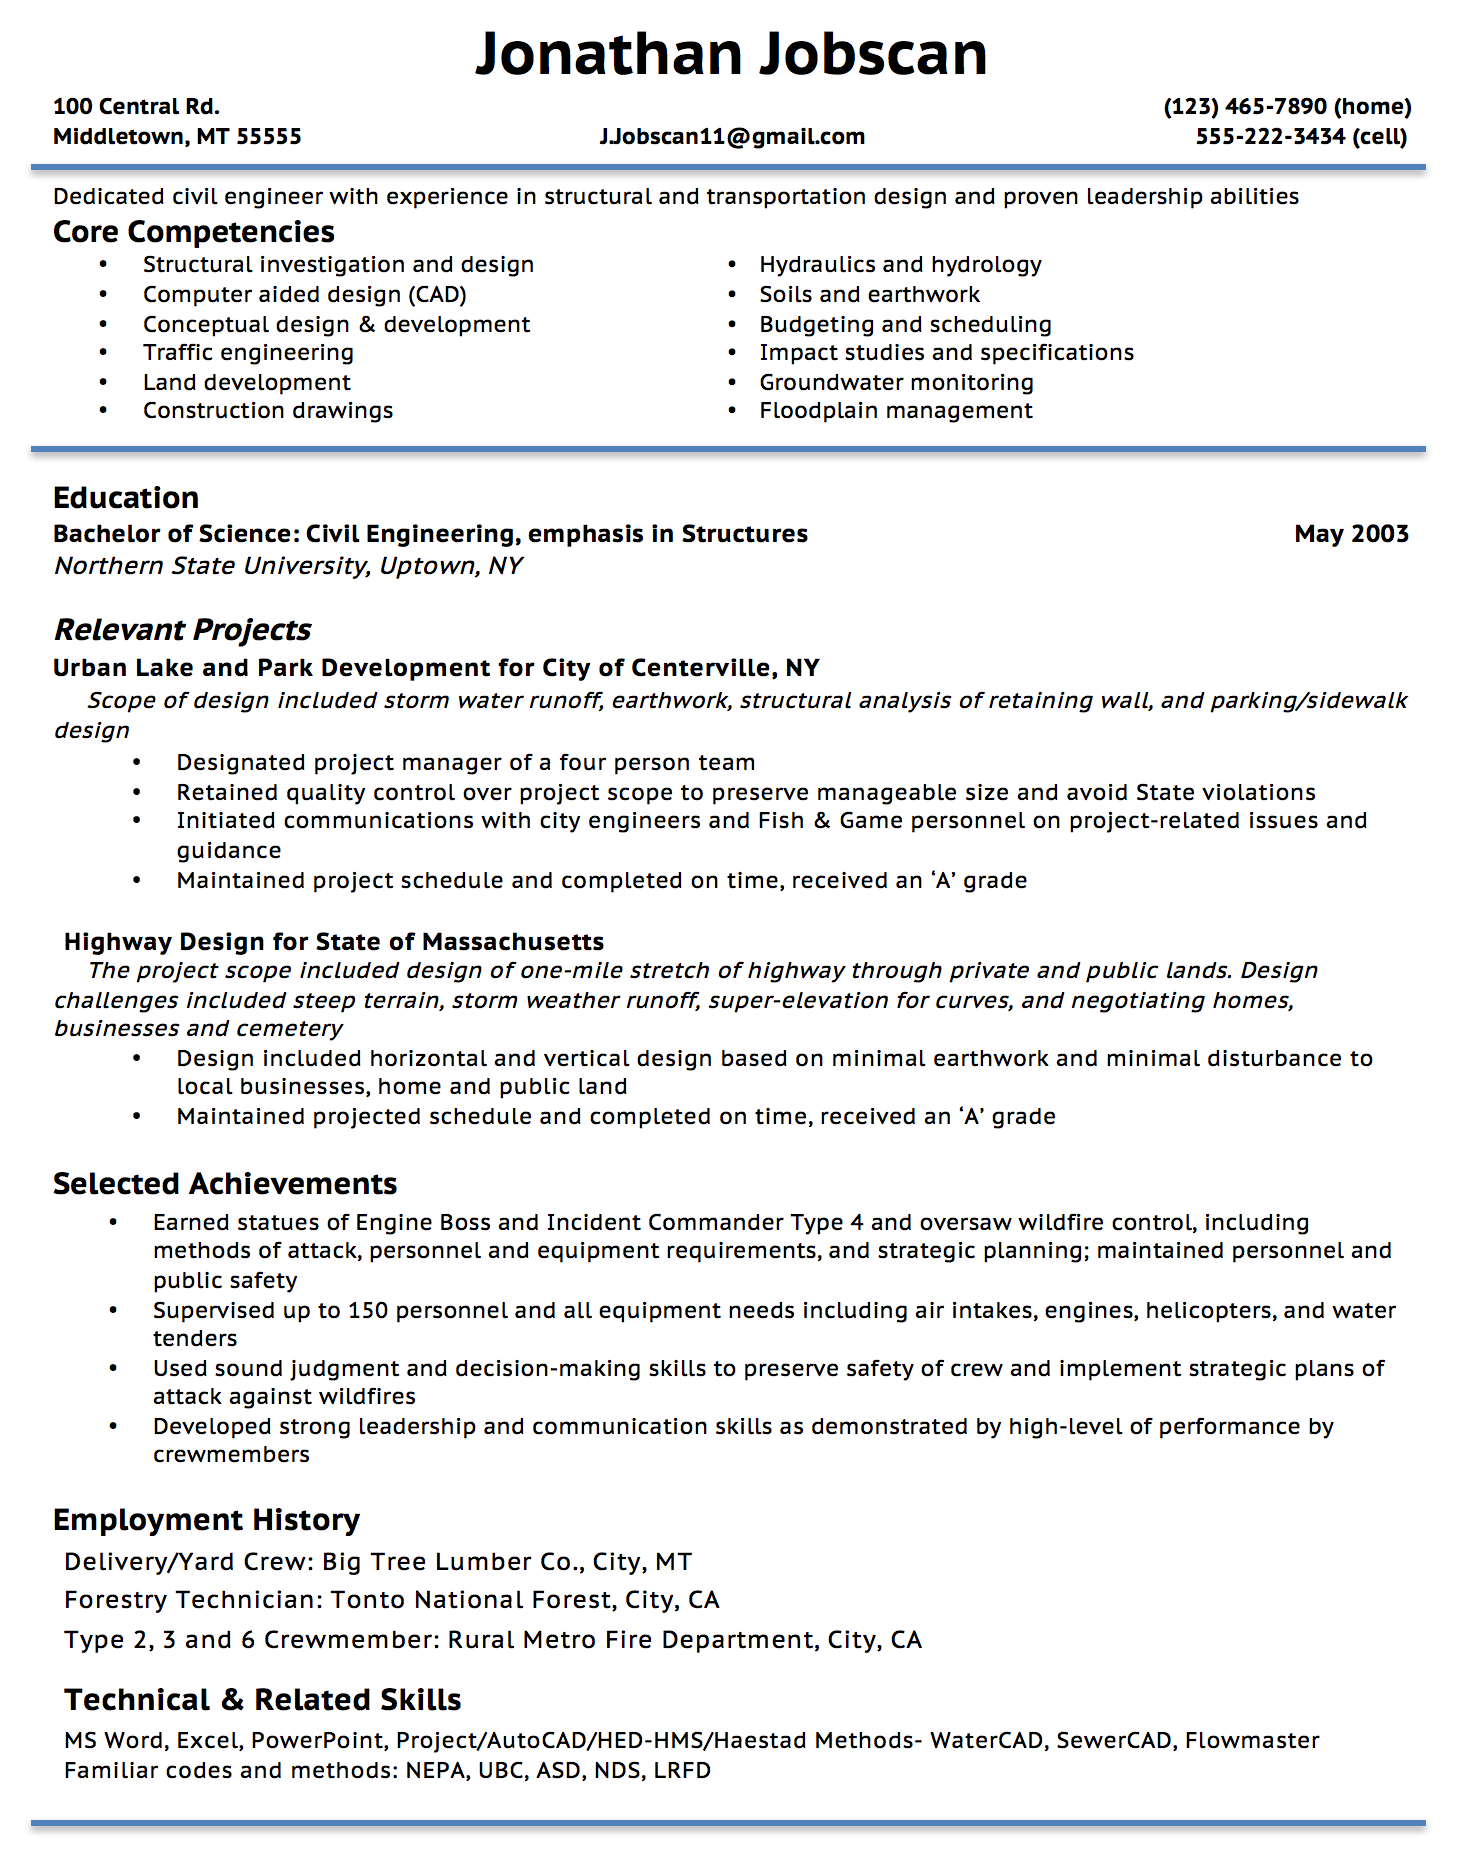 Opposenewapstandardsus  Sweet Resume Writing Guide  Jobscan With Lovely Example Of A Functional Resume Format With Adorable Guest Services Resume Also Sample Hospitality Resume In Addition Michigan Talent Bank Resume And Sociology Resume As Well As Program Specialist Resume Additionally Resume Doc Template From Jobscanco With Opposenewapstandardsus  Lovely Resume Writing Guide  Jobscan With Adorable Example Of A Functional Resume Format And Sweet Guest Services Resume Also Sample Hospitality Resume In Addition Michigan Talent Bank Resume From Jobscanco